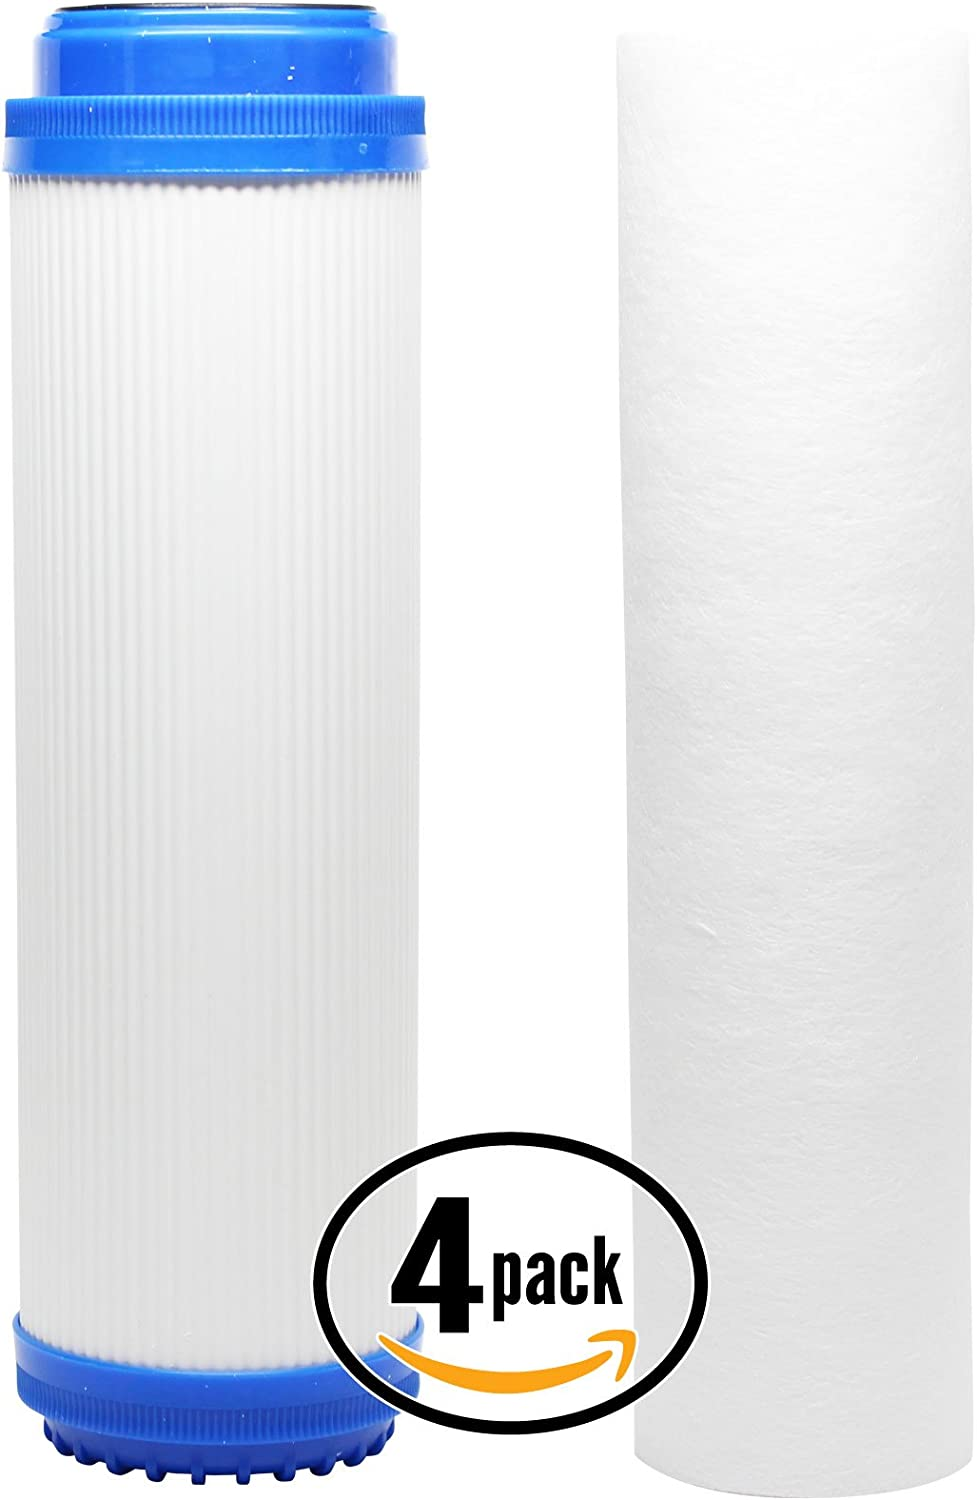 Includes Polypropylene Sediment Filter /& Granular Activated Carbon Filter 4-Pack Replacement Filter Kit Compatible with Aqua Pure AP102T RO System Denali Pure Brand